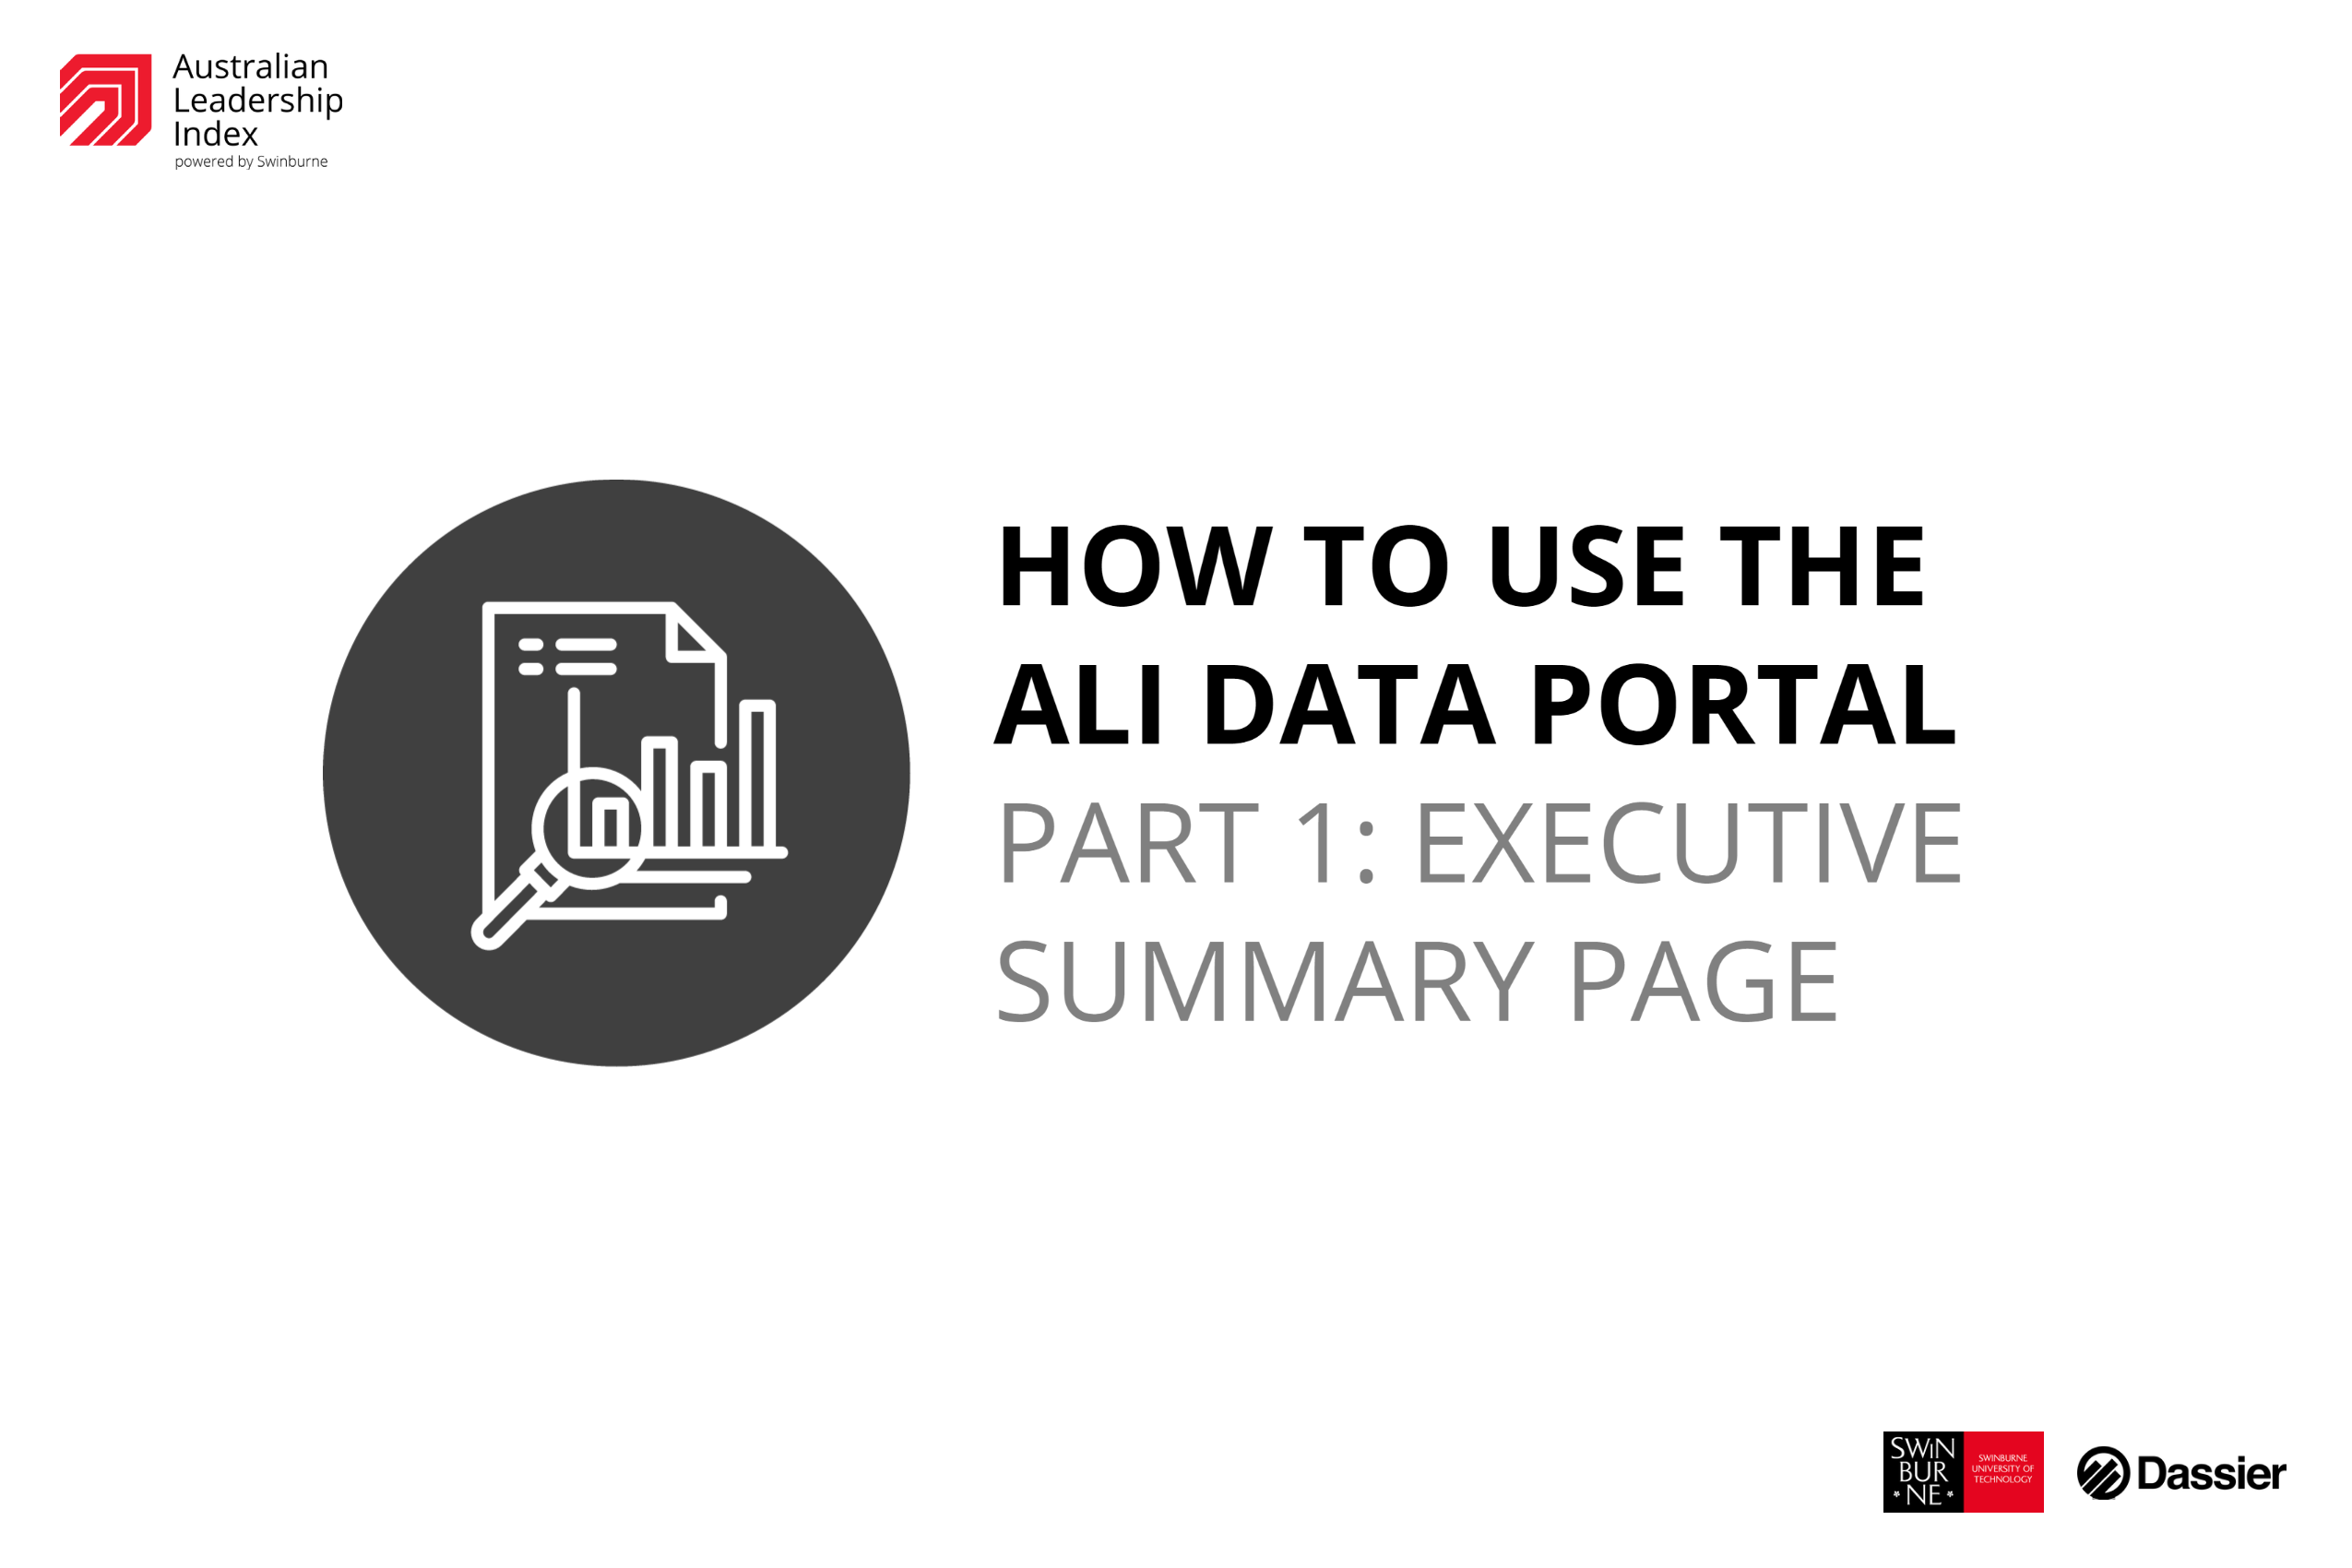 How-to-Use-the-ALI-Data-Portal-Part-1-Executive-Summary-Page